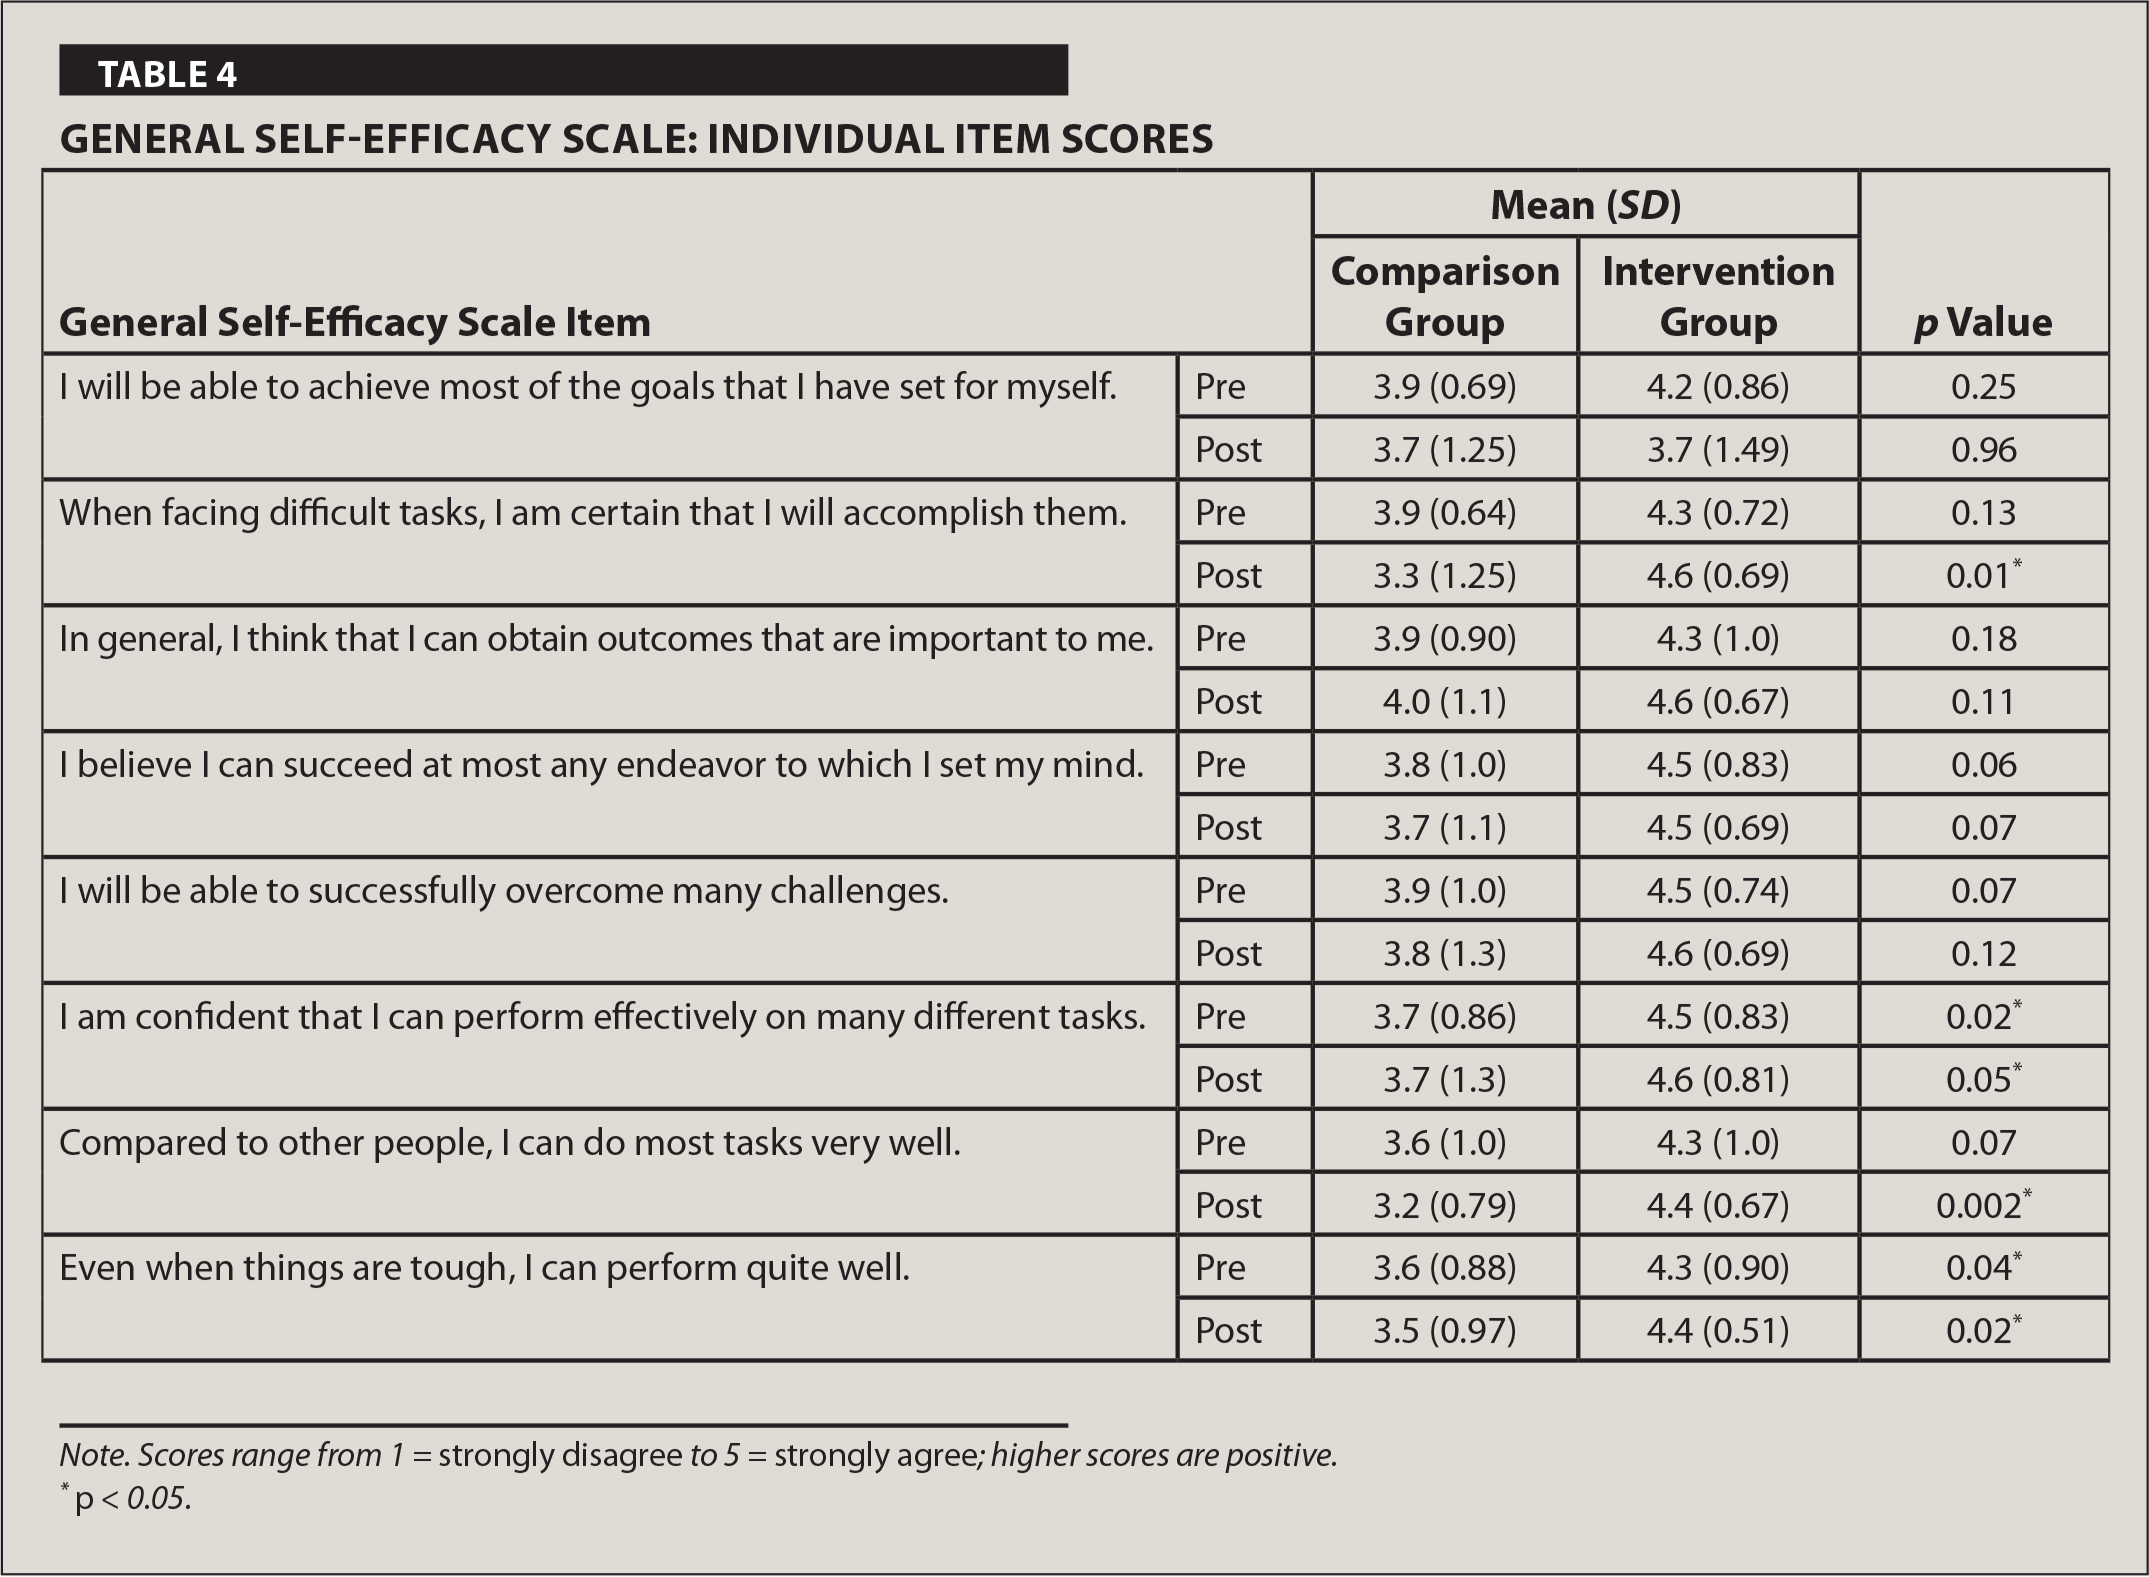 General Self-Efficacy Scale: Individual Item Scores